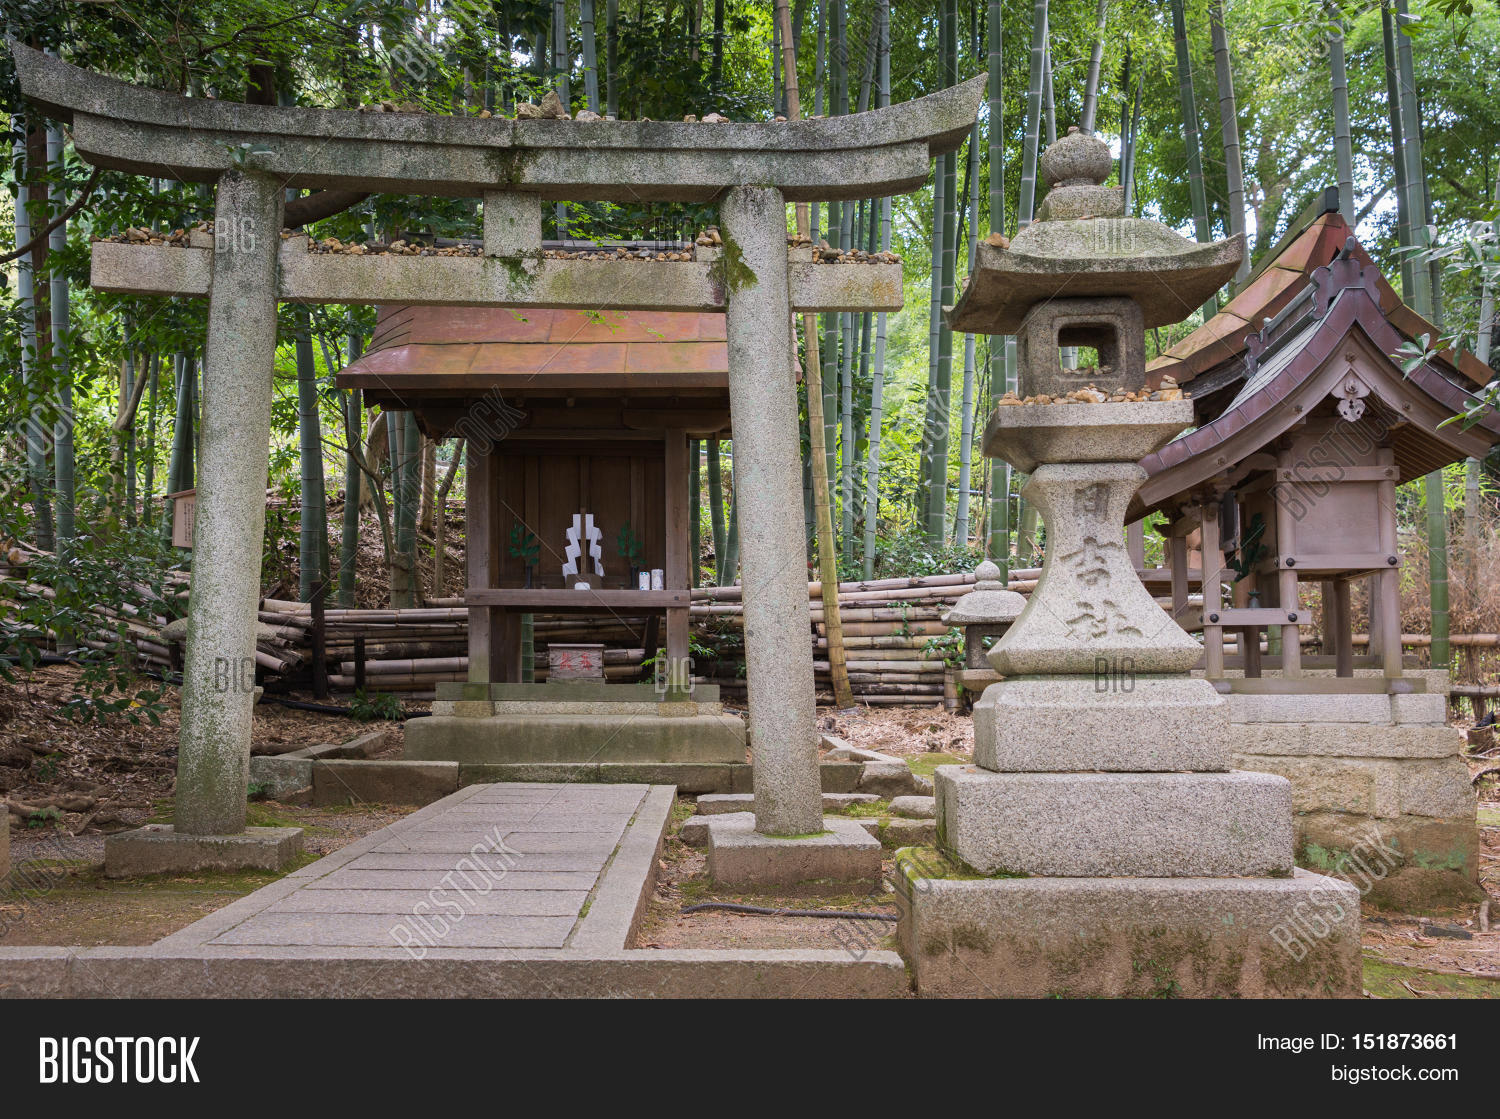 Japanese Garden Structures Kyoto Japan September 16 2016 A Small Shinto Shrine Is Built In